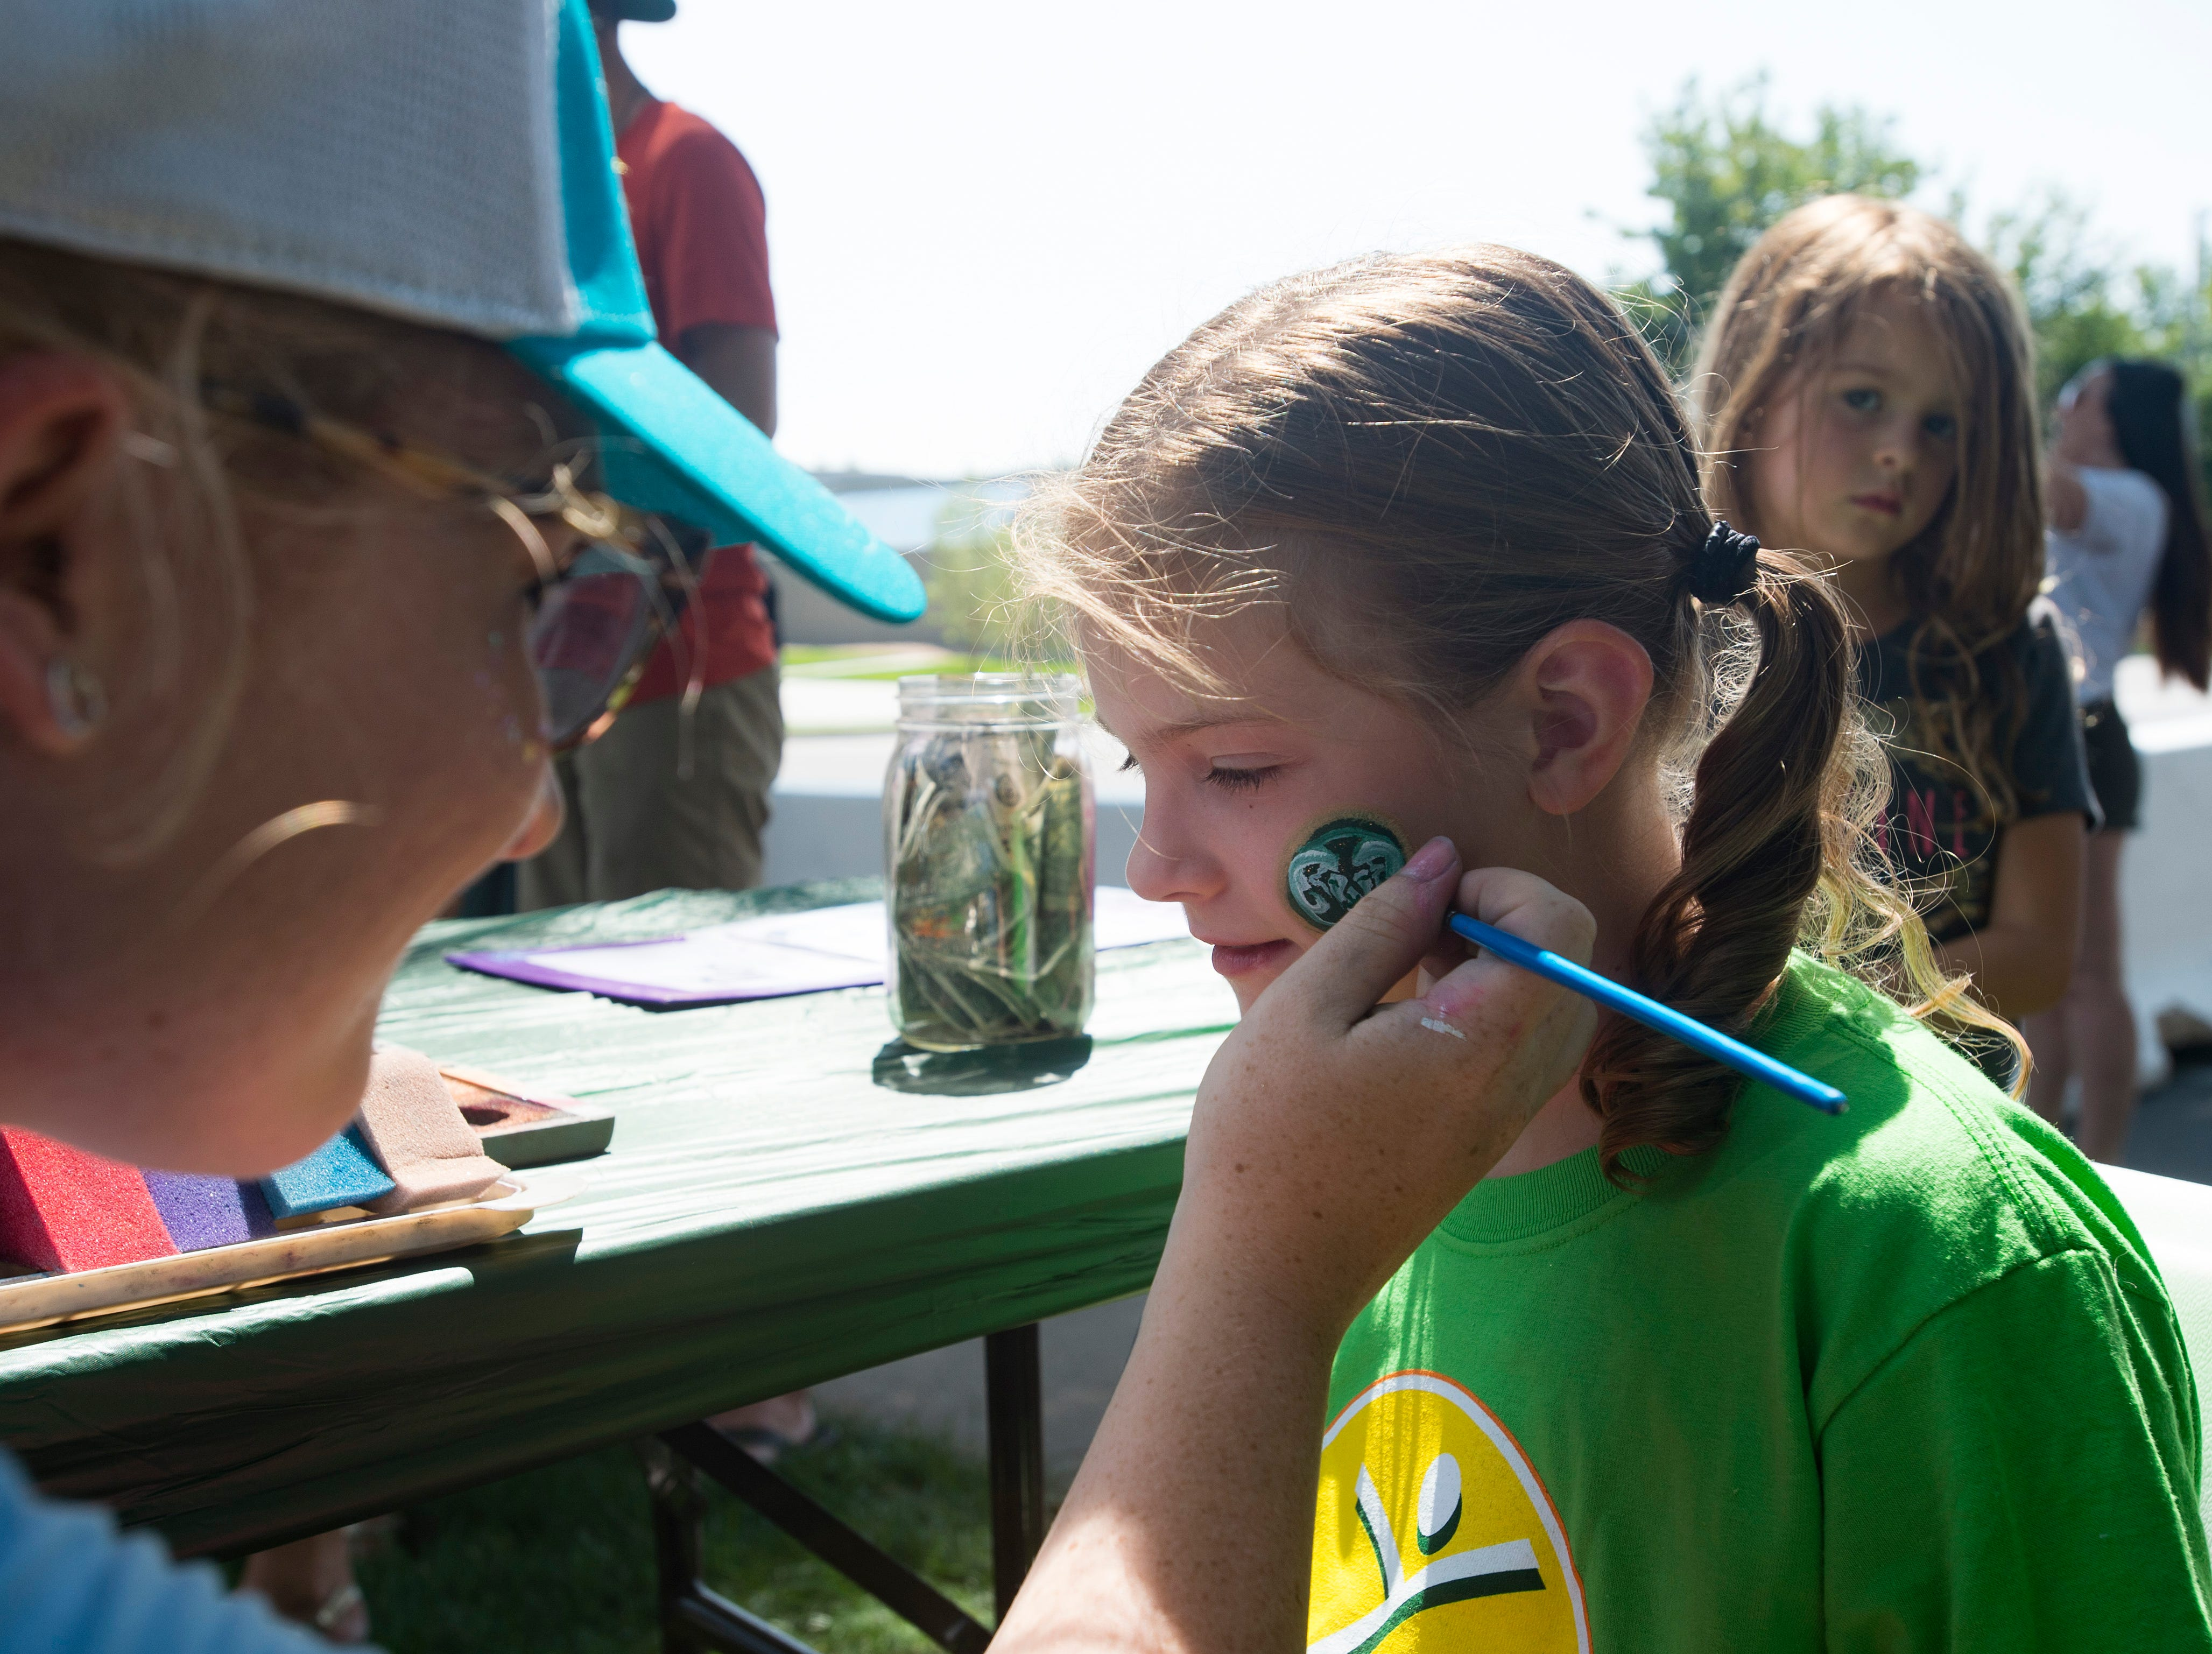 Madison Gasper, 7, shows her CSU spirit by having her face painted during an open house and scrimmage hosted by the Rams outside of Canvas Stadium on Saturday, August 4, 2018.